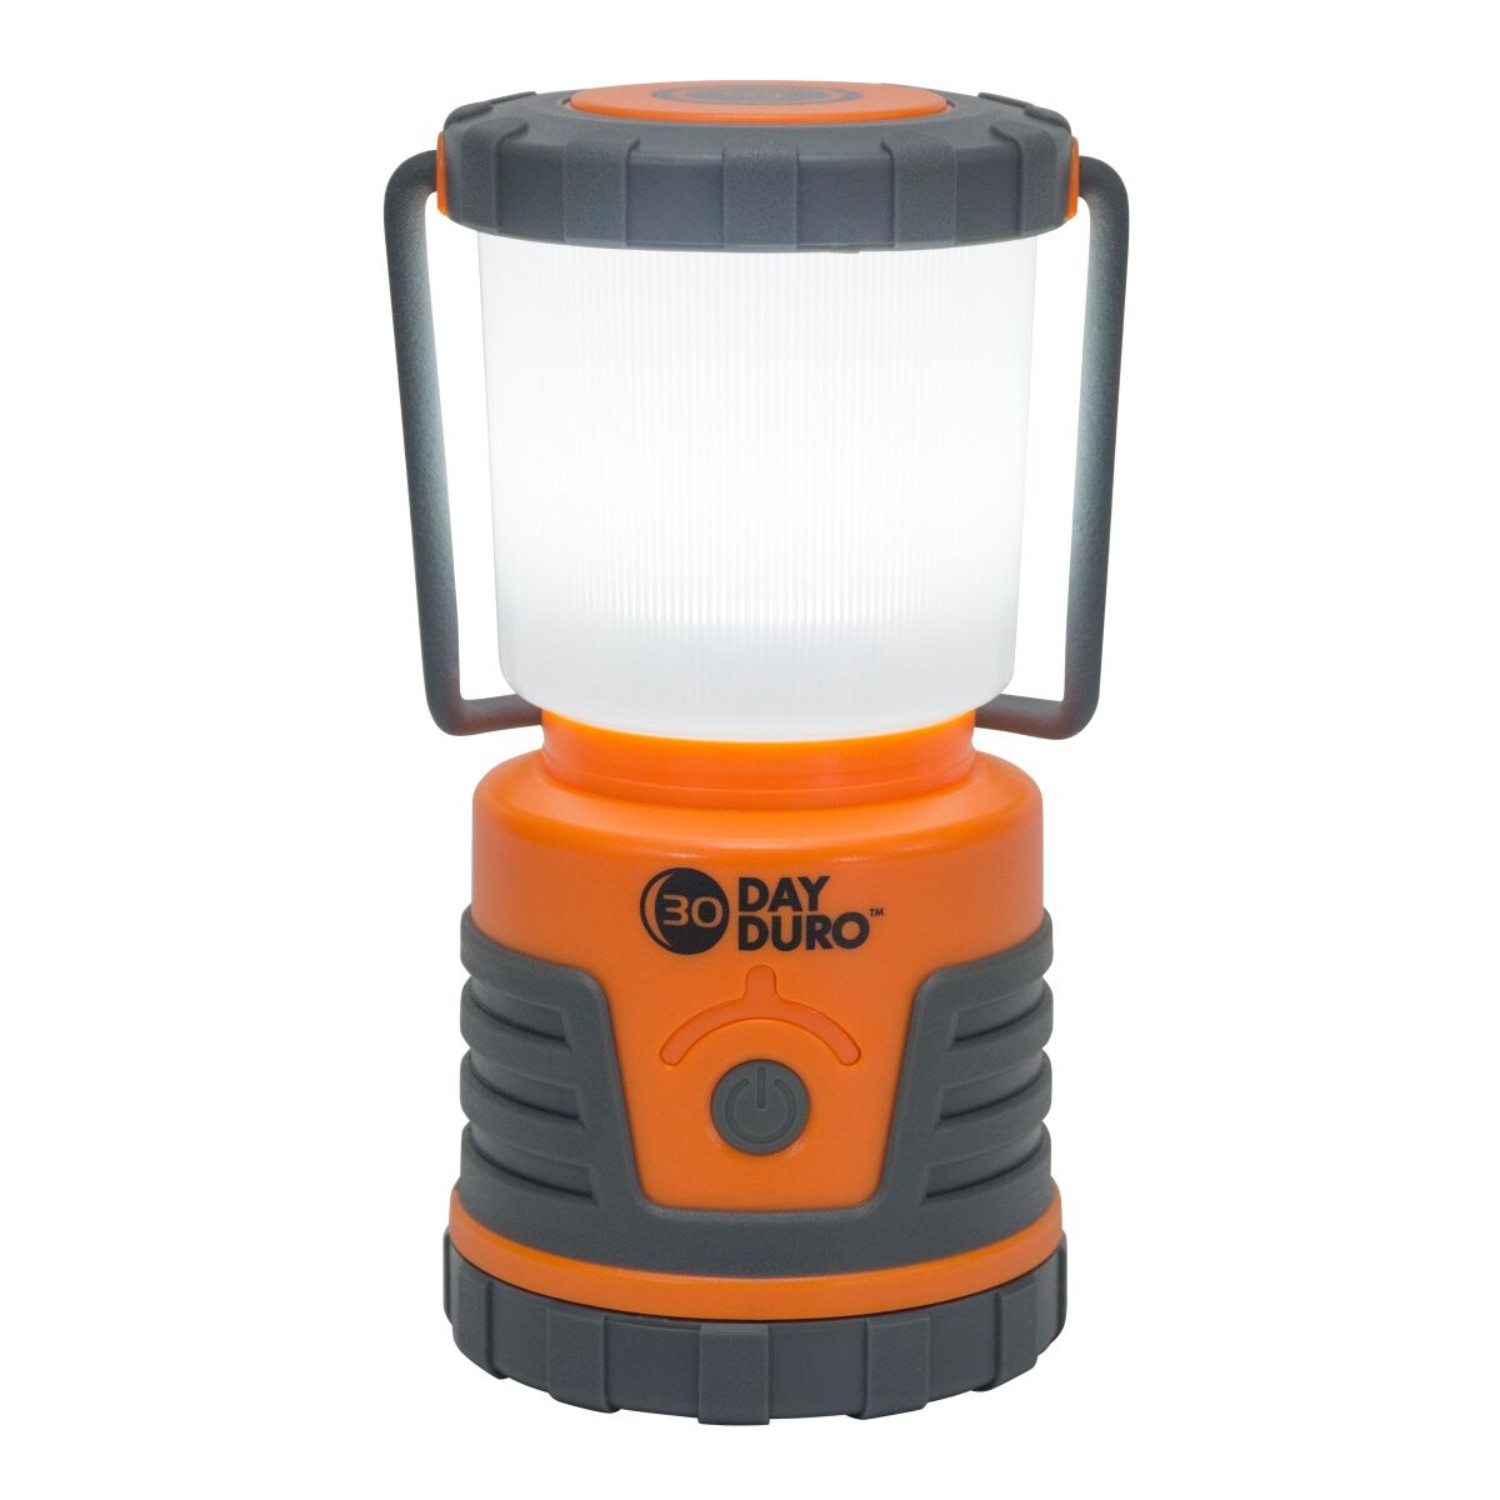 UST 30-Day Duro LED Lantern Orange